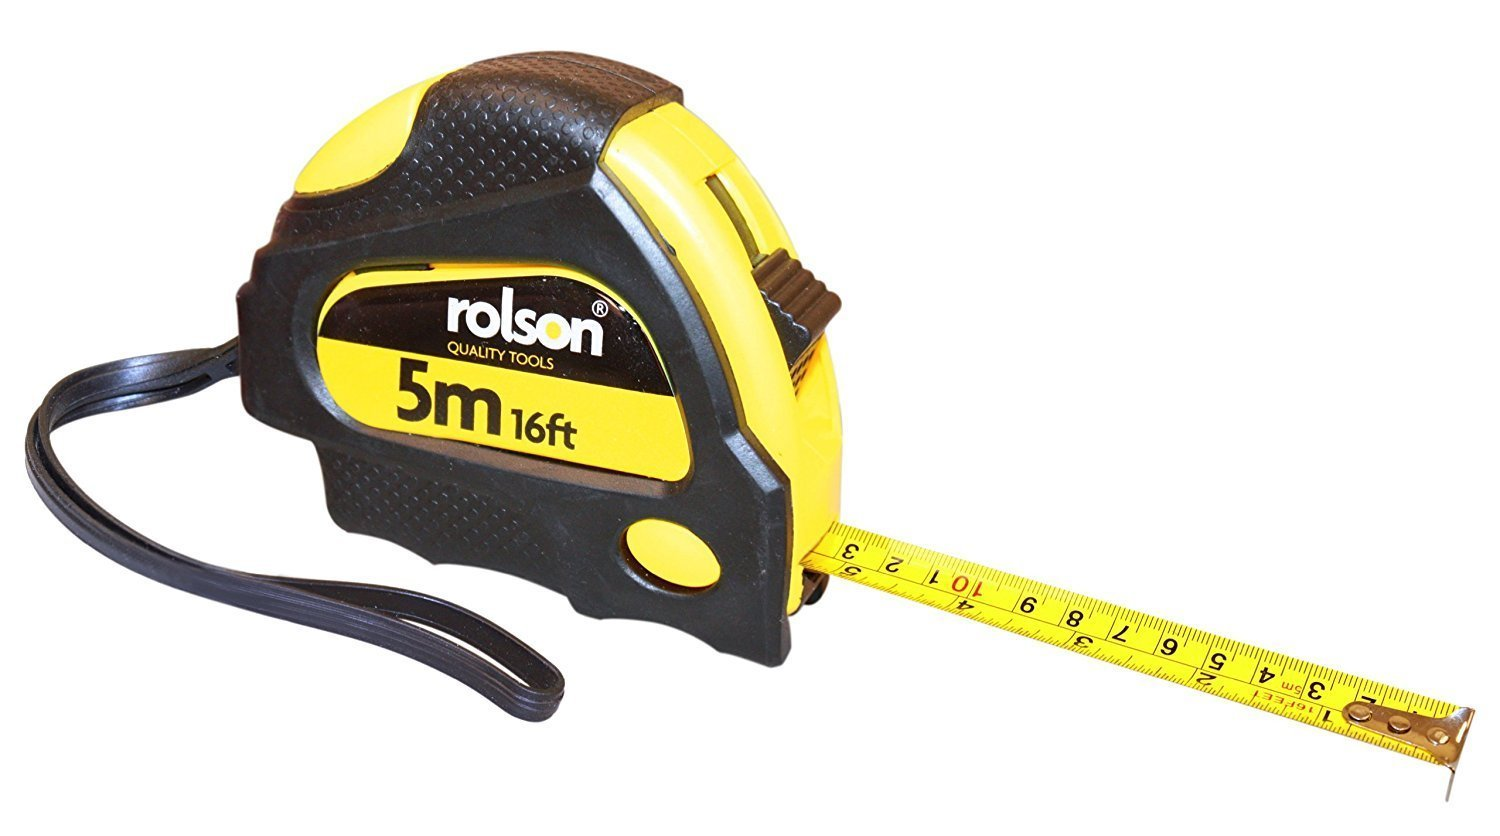 Rolson 50535 5m x 19mm Measure Tape Only £1.5 at Amazon